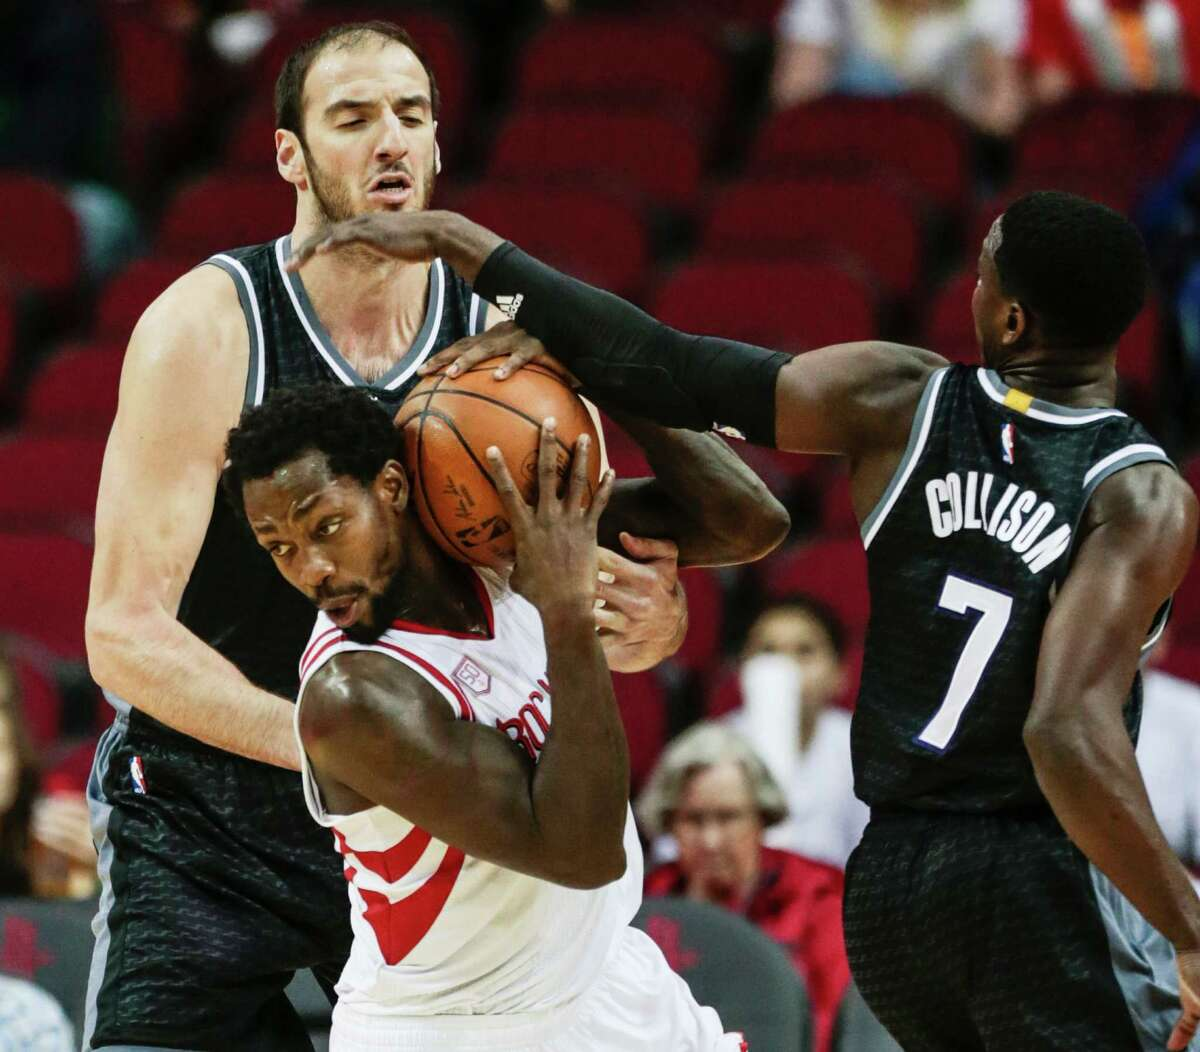 Rockets guard Pat Beverley pulls the ball away from the Kings' Kosta Koufos, left, and Darren Collison on Wednesday night at Toyota Center.